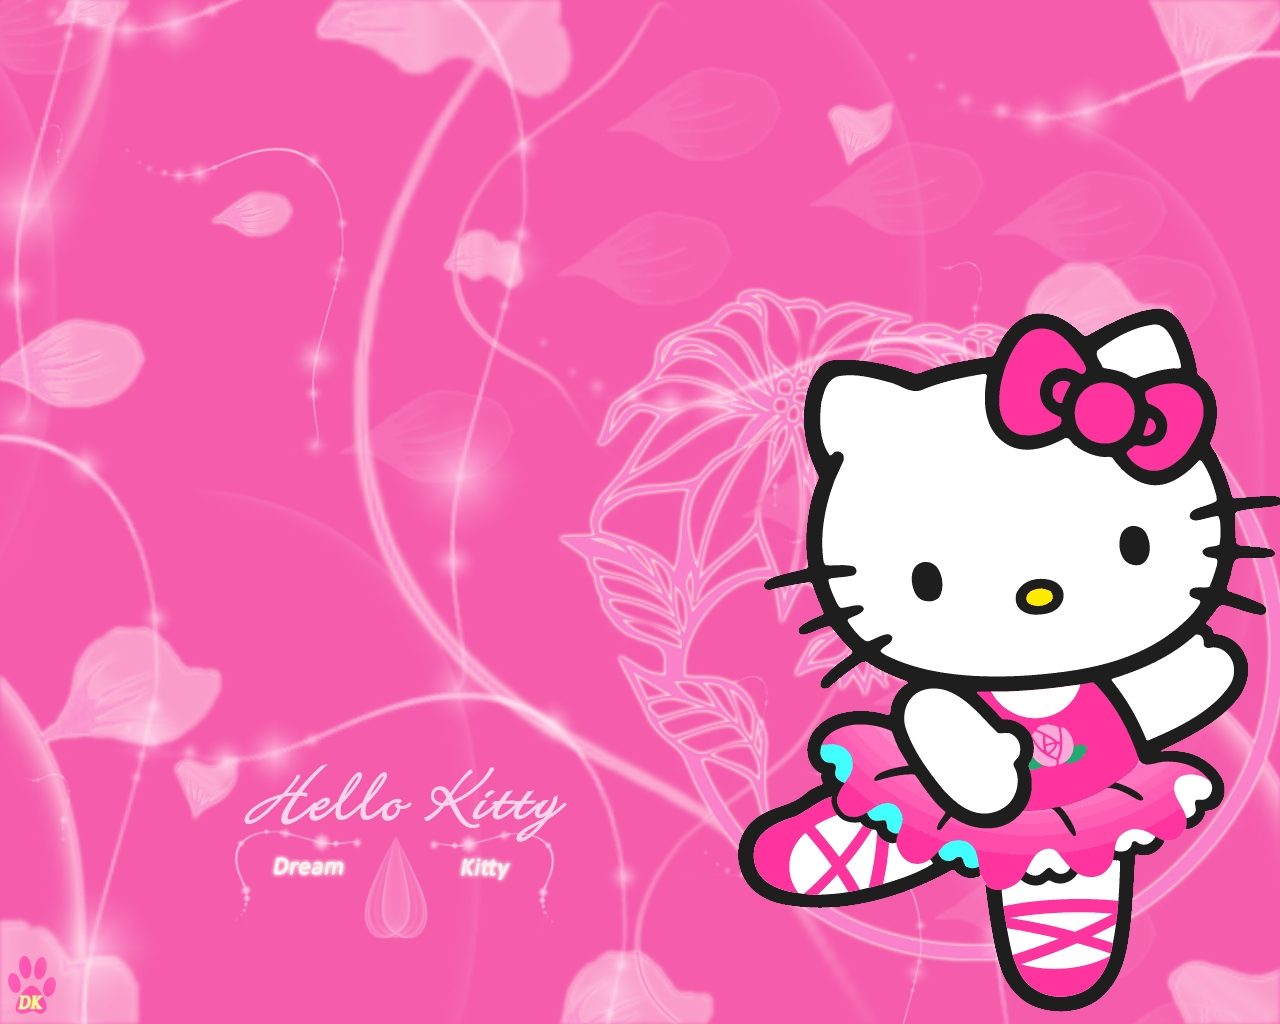 Hello Kitty Dream Desktop Wallpaper